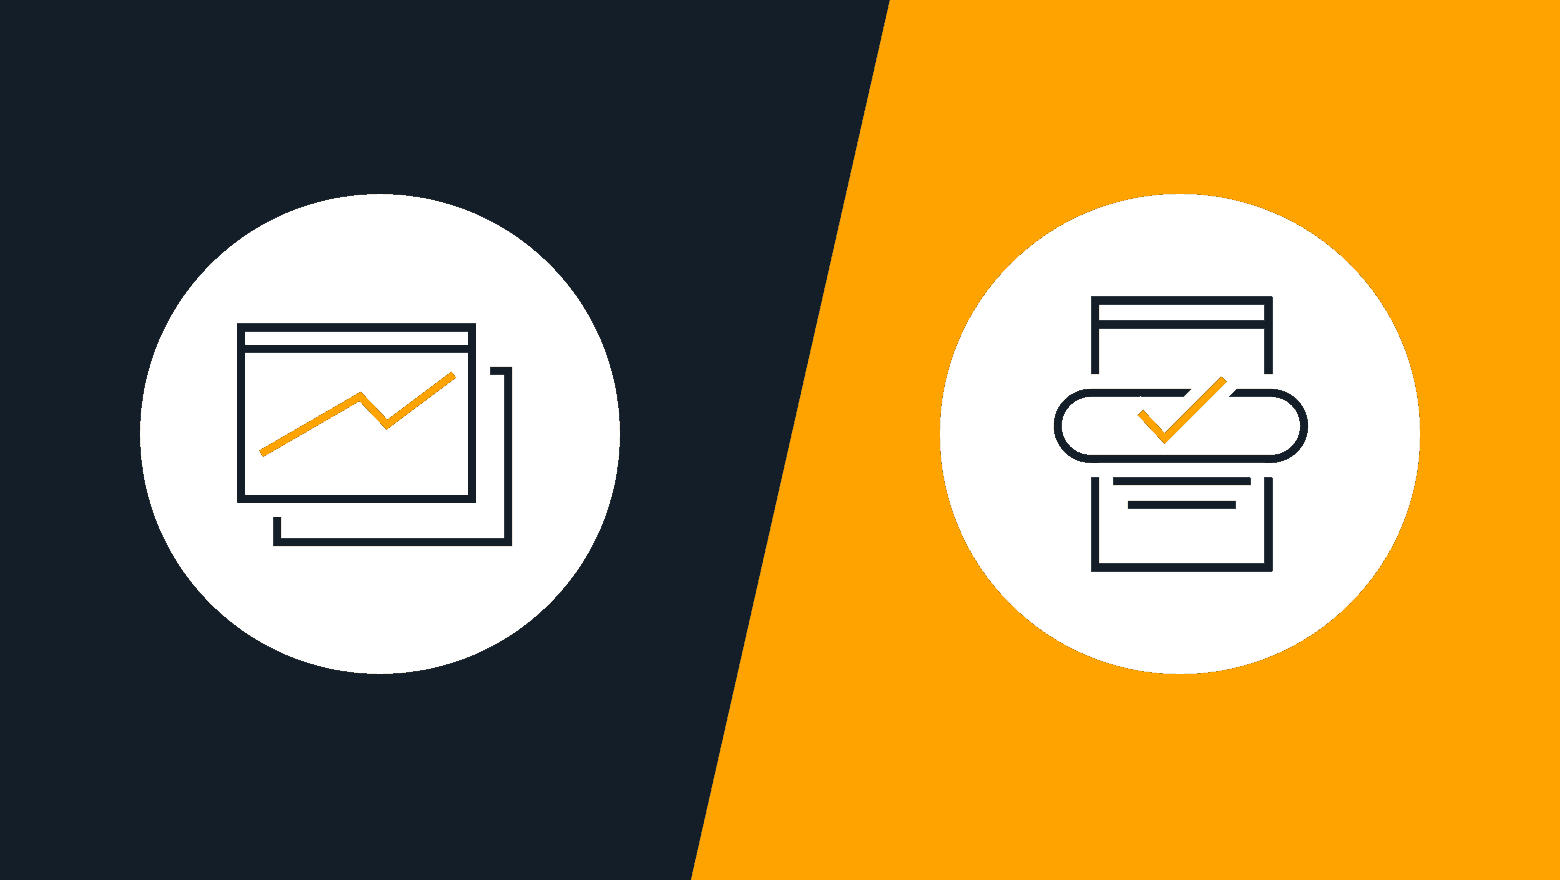 landing page vs homepage icon